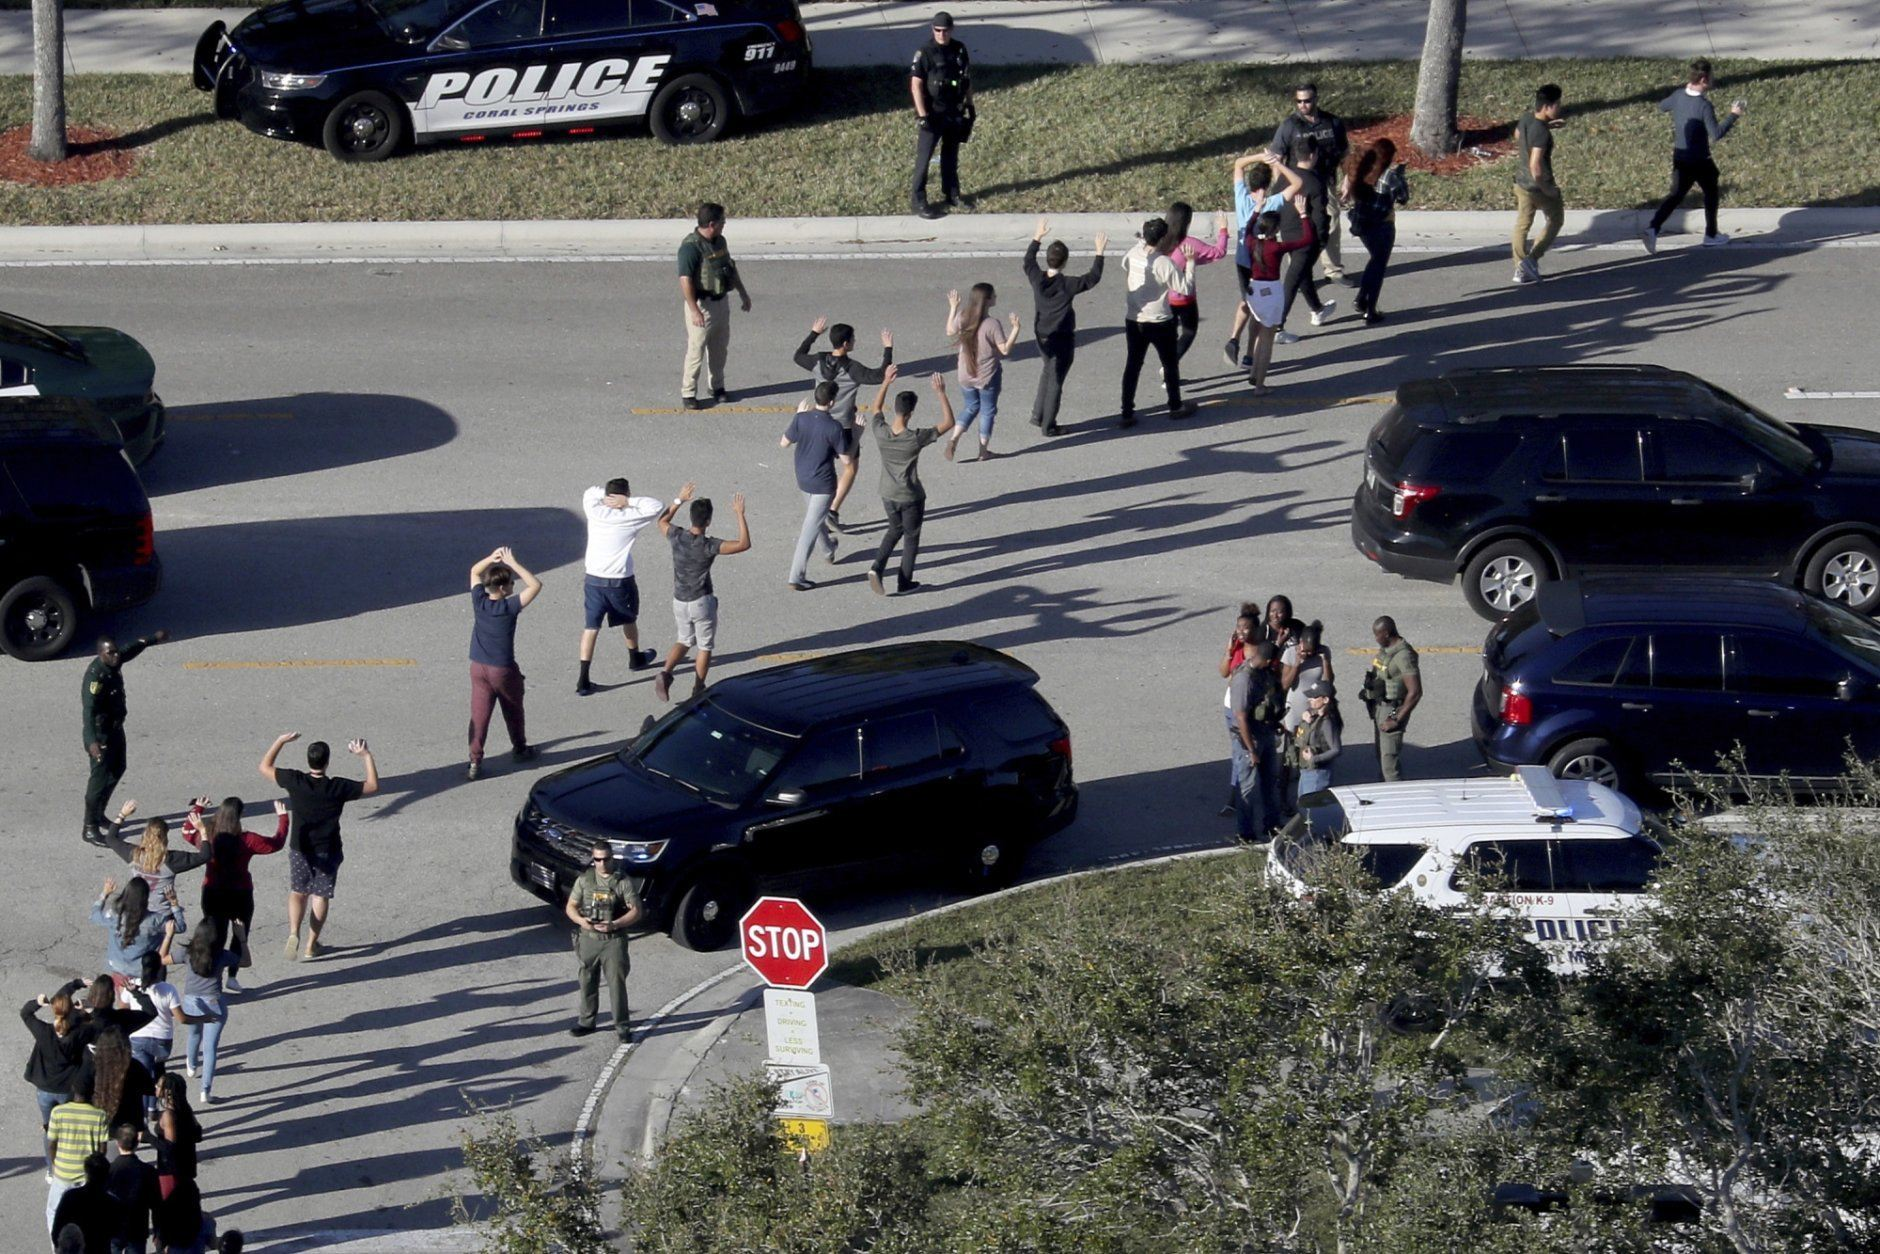 FILE - In this Wednesday, Feb. 14, 2018 file photo, students hold their hands in the air as they are evacuated by police from Marjory Stoneman Douglas High School in Parkland, Fla., after a shooter opened fire on the campus. Seventeen students and staff were killed in the attack. Parkland is one of the communities where, in the wake of mass shootings, wellness centers have opened, offering residents a place to gather and heal. (Mike Stocker/South Florida Sun-Sentinel via AP)